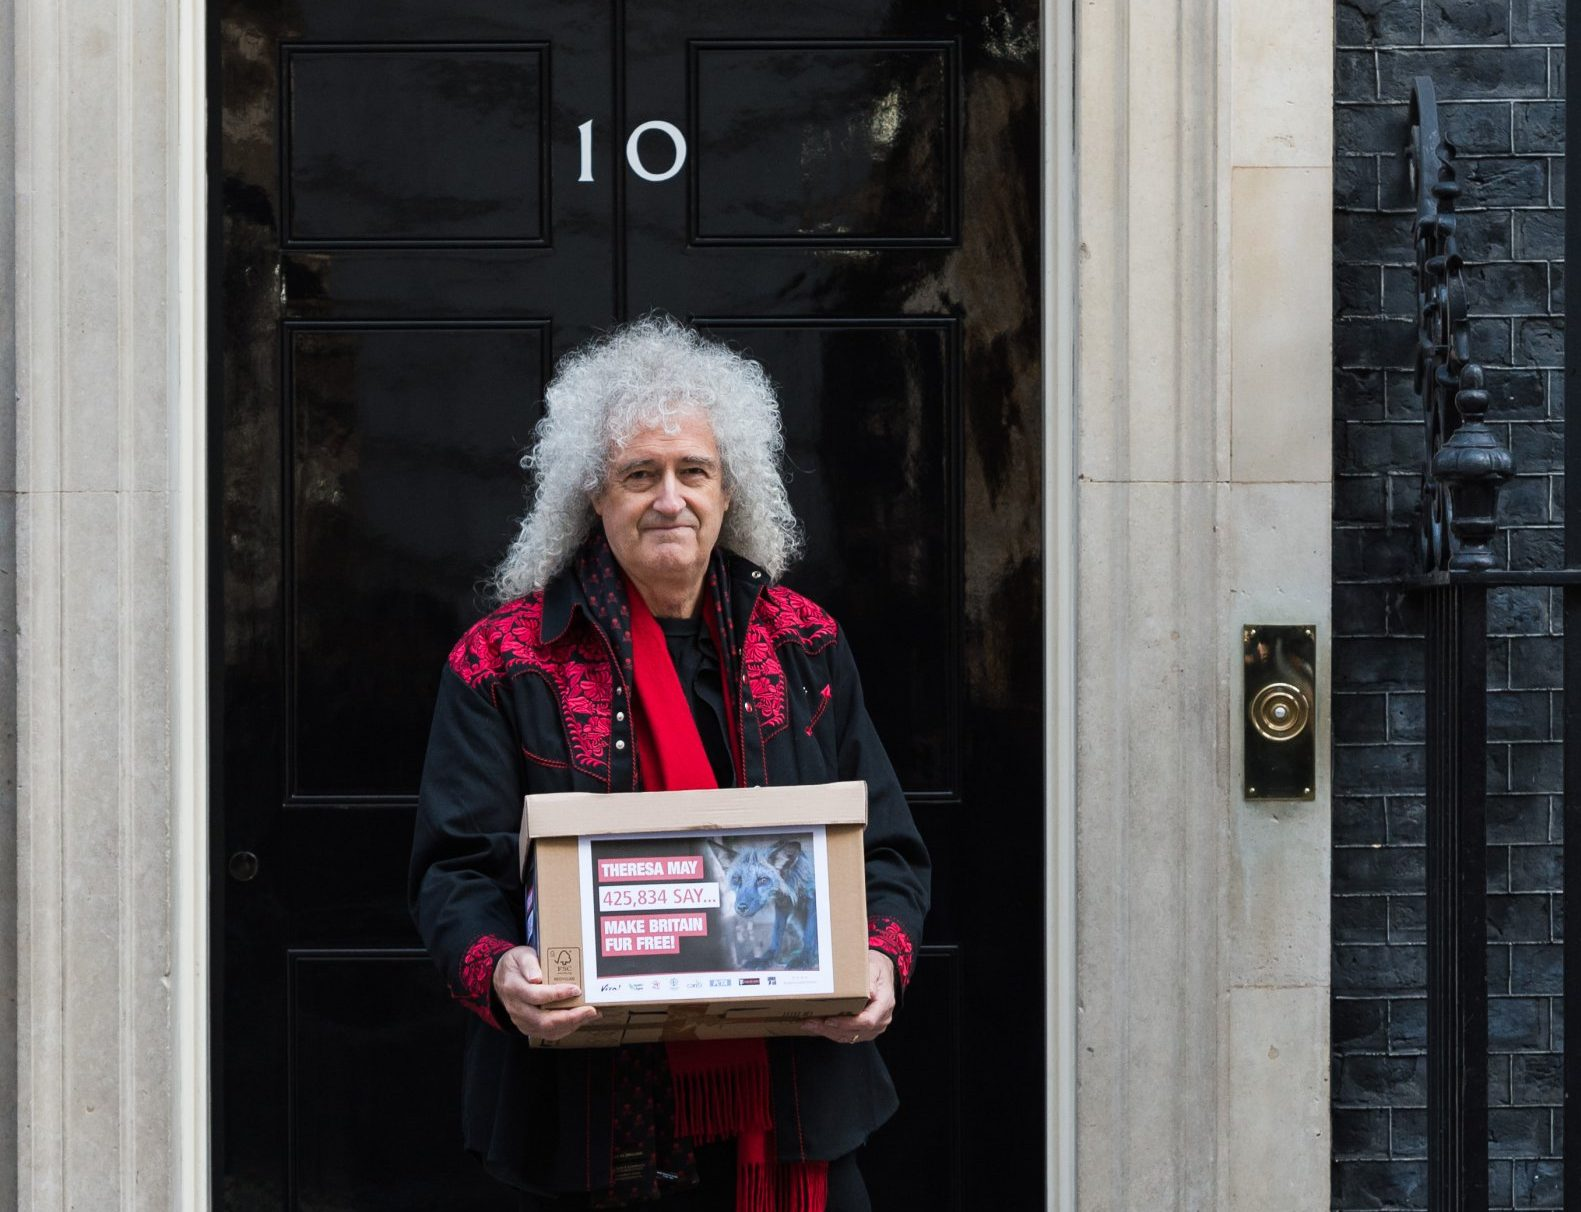 Queen's Brian May delivers Fur Free Britain petition to 10 Downing Street calling for an import ban on fur